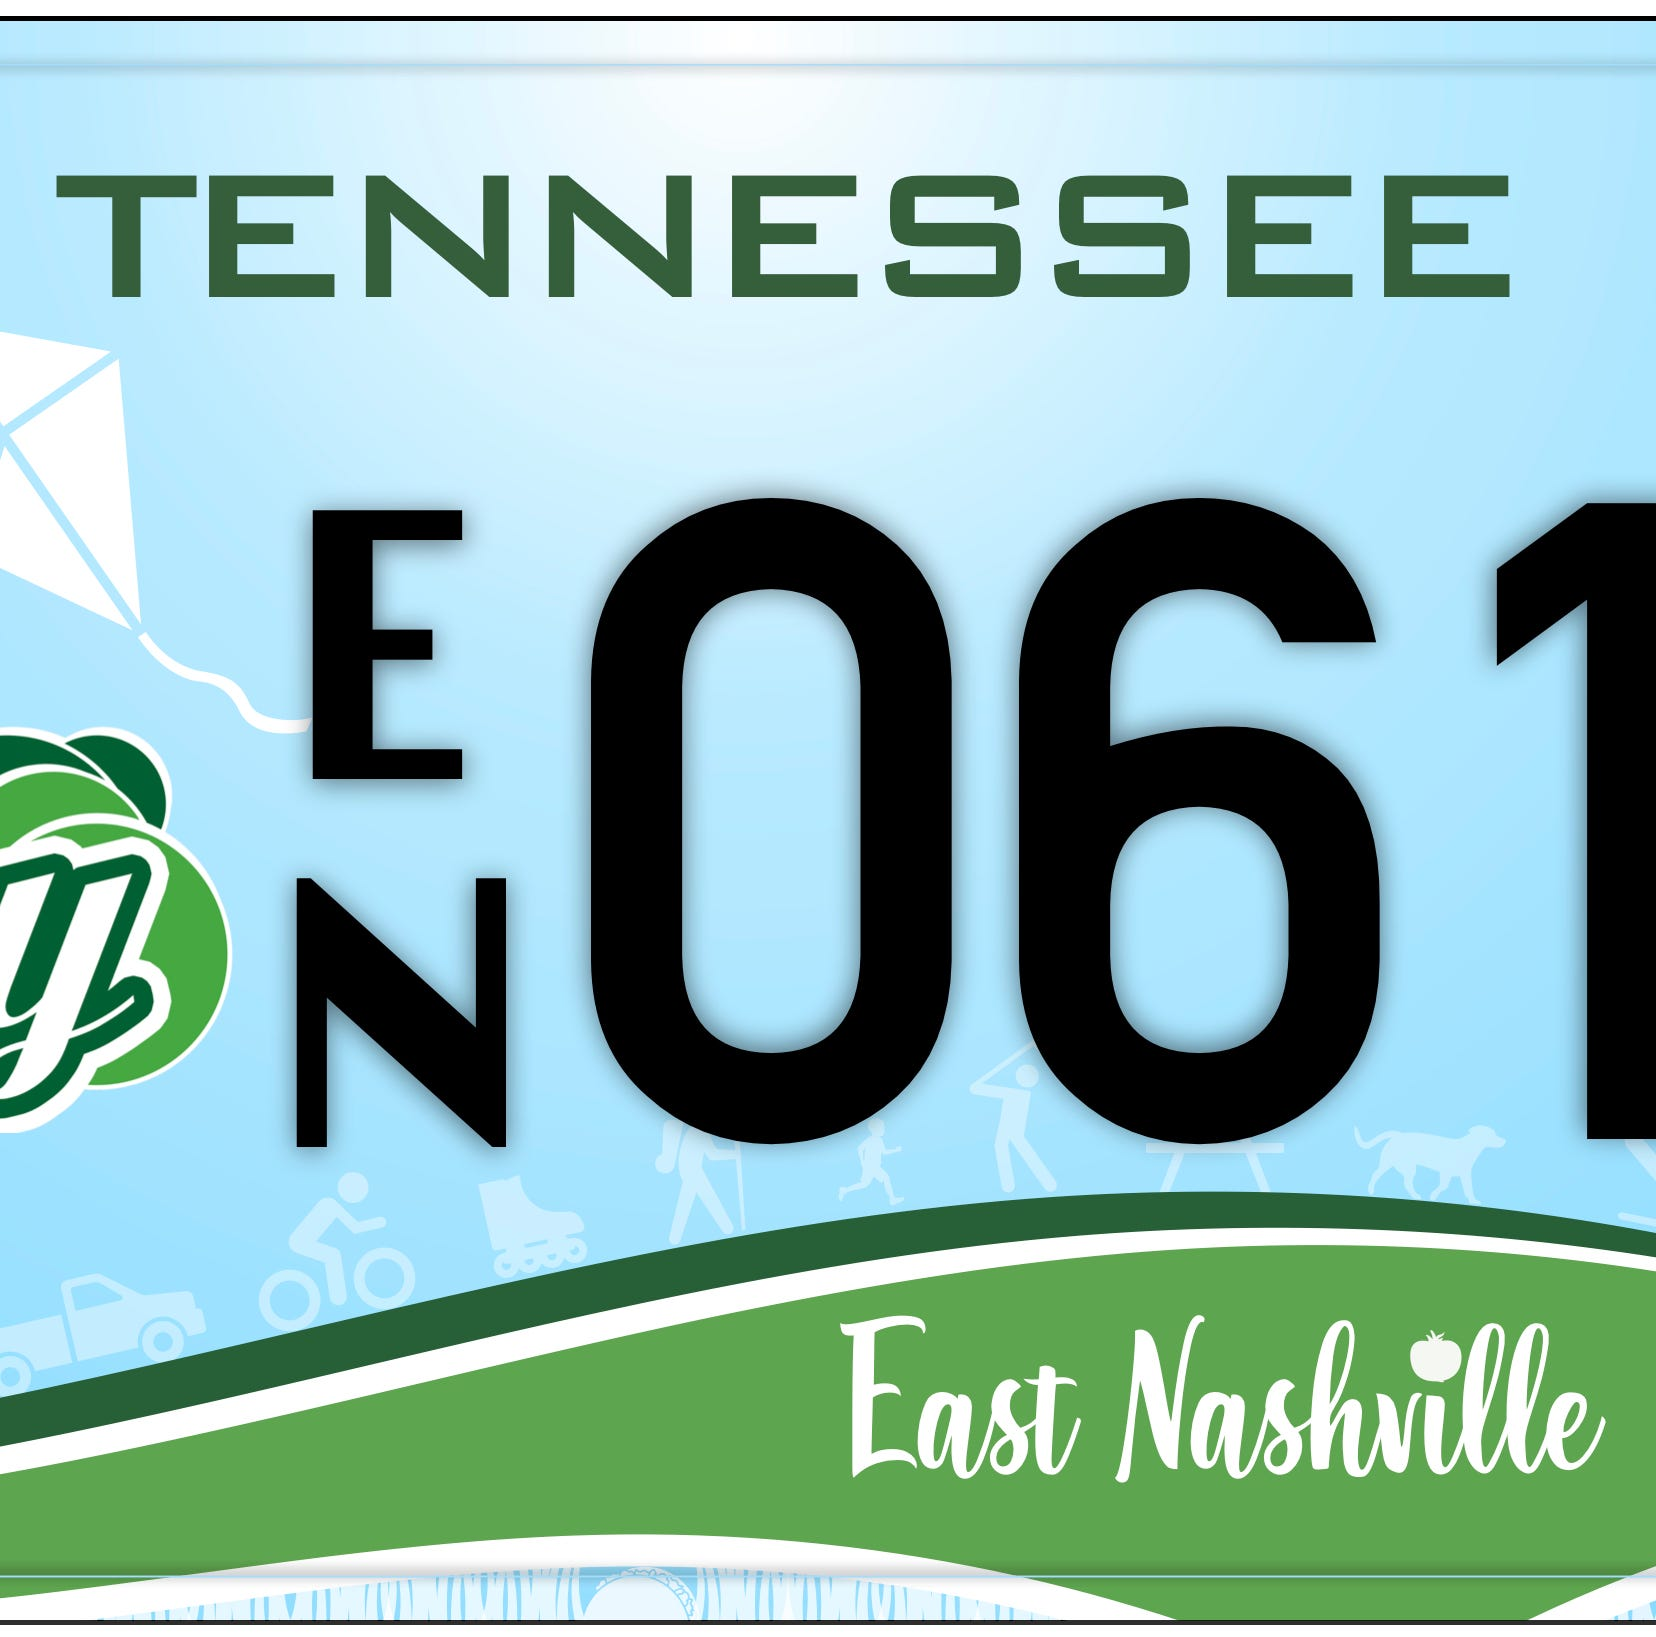 East Nashville shoots for its own specialty TN license plate